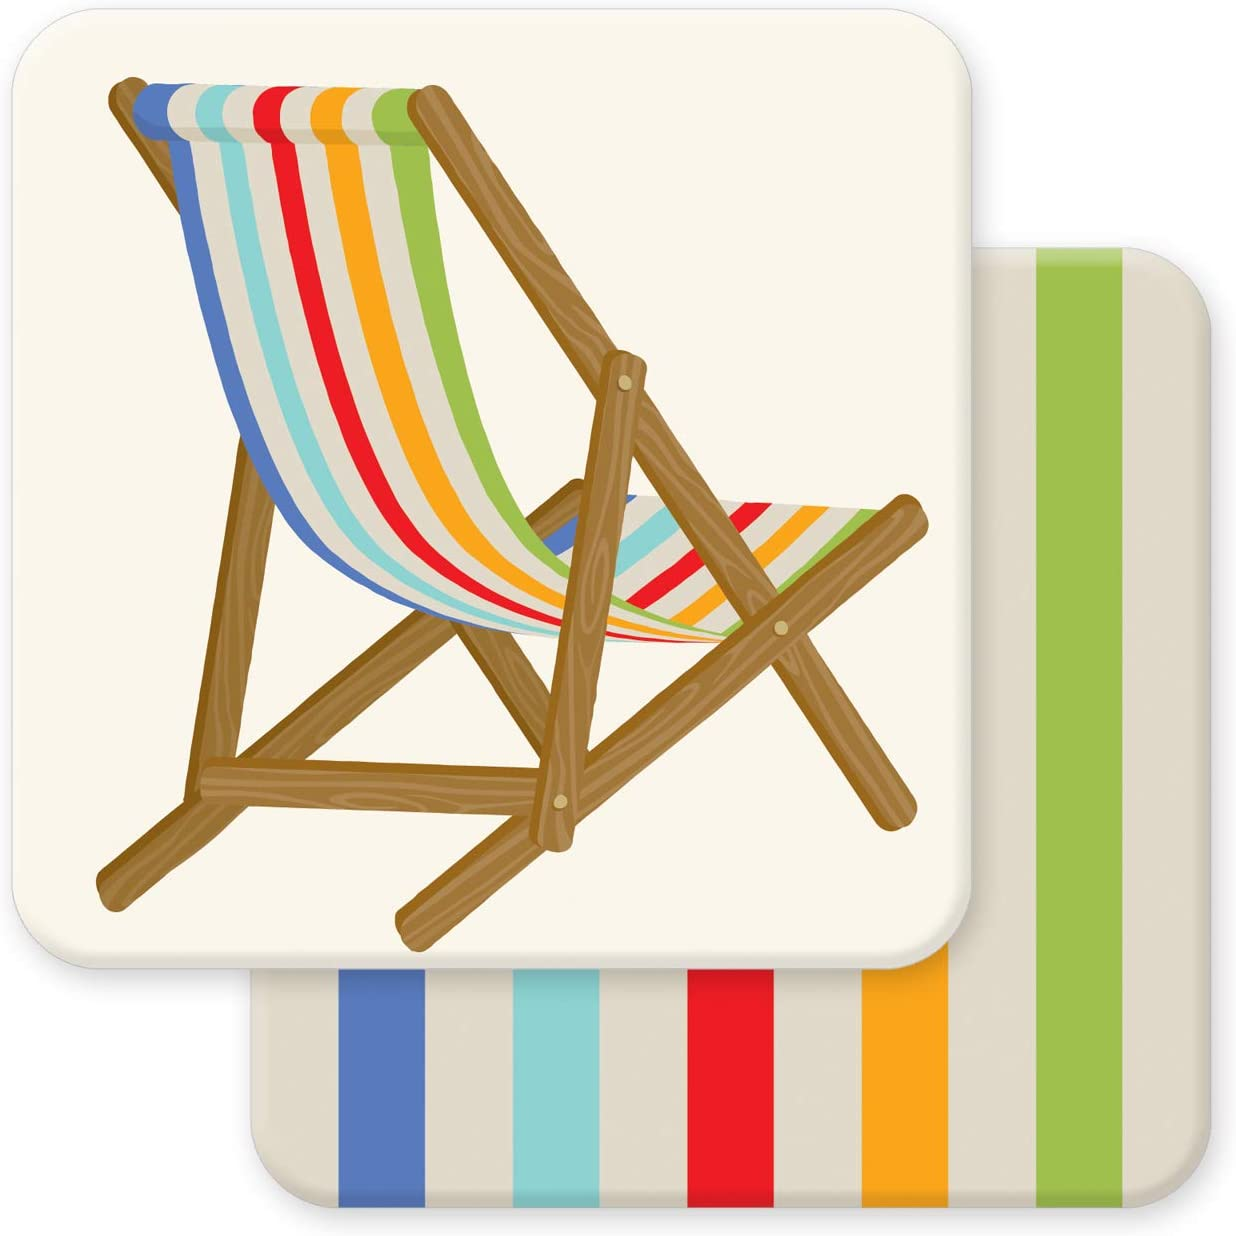 Multicolored Beach Chair Reversible Set of 10 Decorative Absorbent Coasters 4 x 4 inches Easy Elegant Entertaining Housewarming Everyday Indoor Outdoor Biodegradable Eco-Friendly by Faux Designs